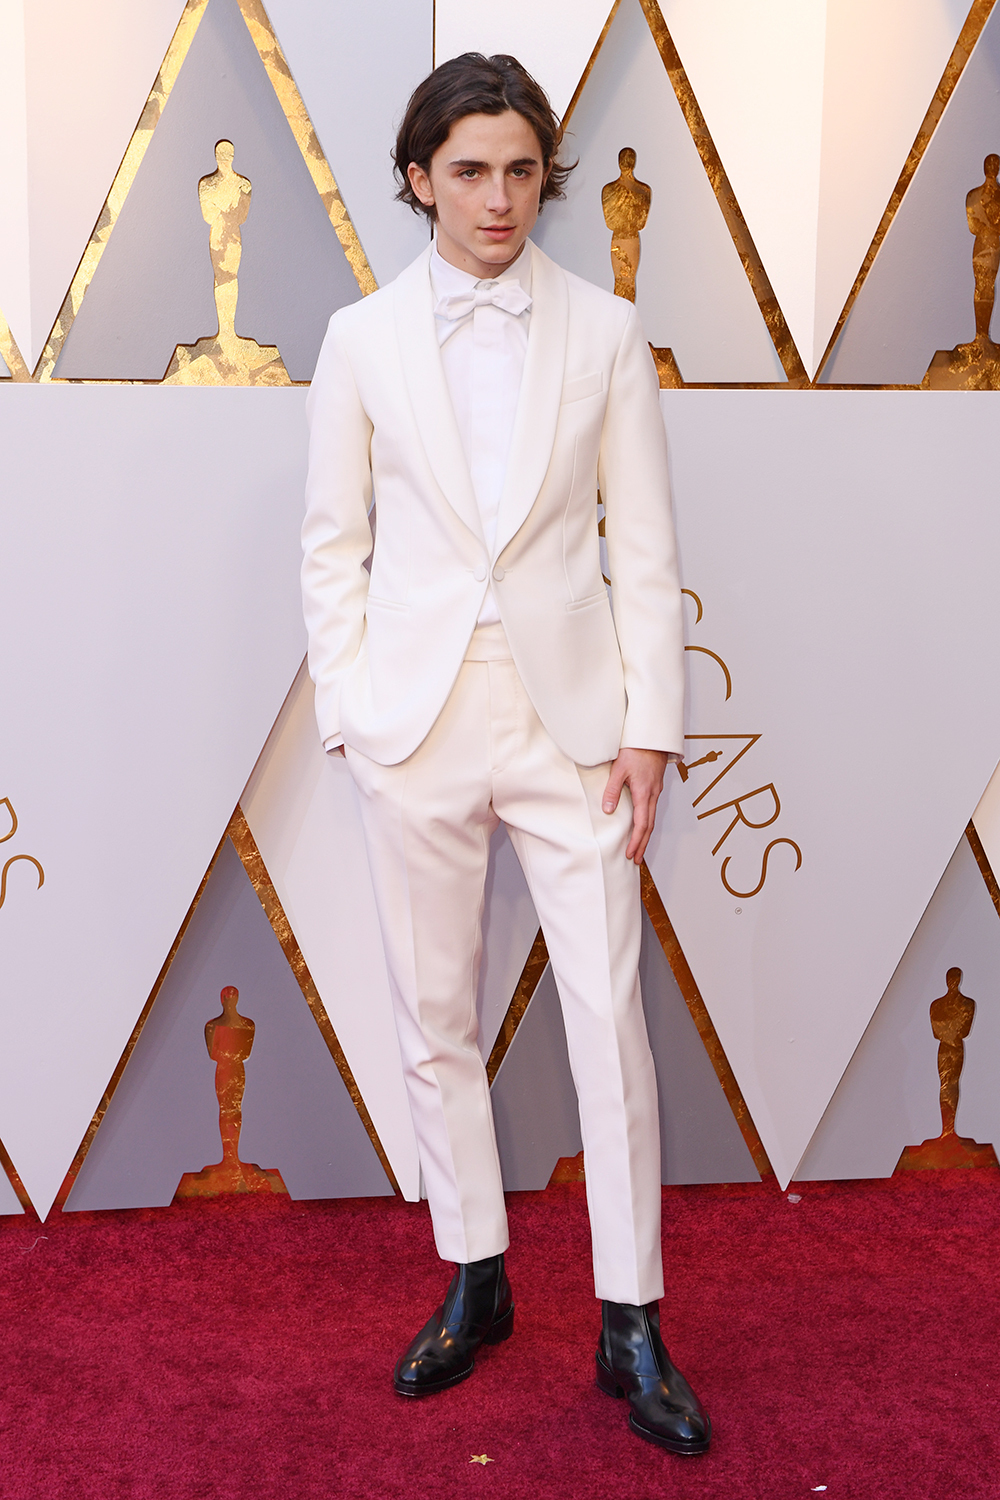 timothee-chalamet-oscars-red-carpet.jpg